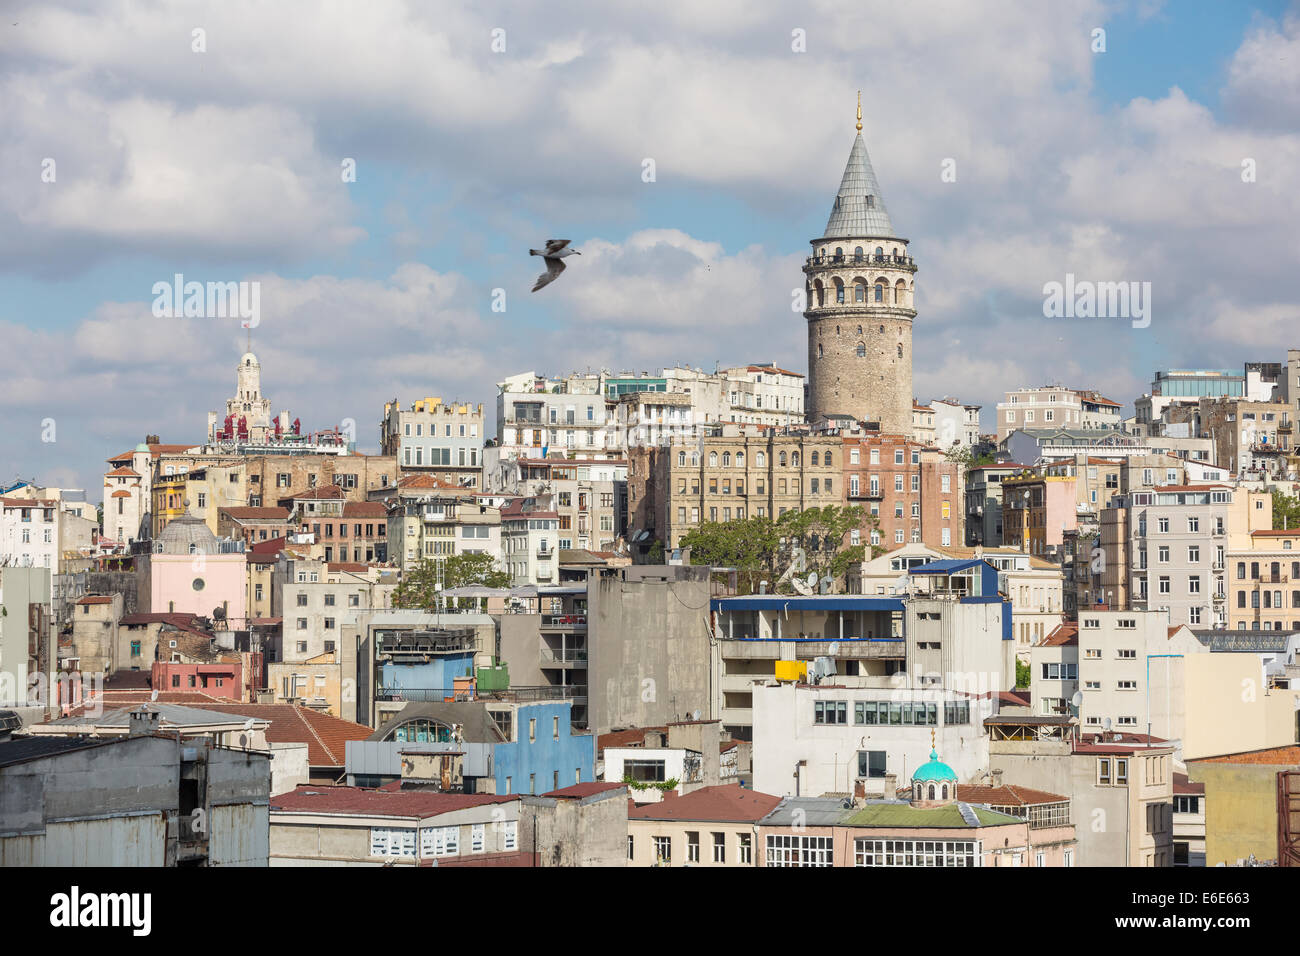 Galata tower and rooftops, Istanbul Turkey - Stock Image